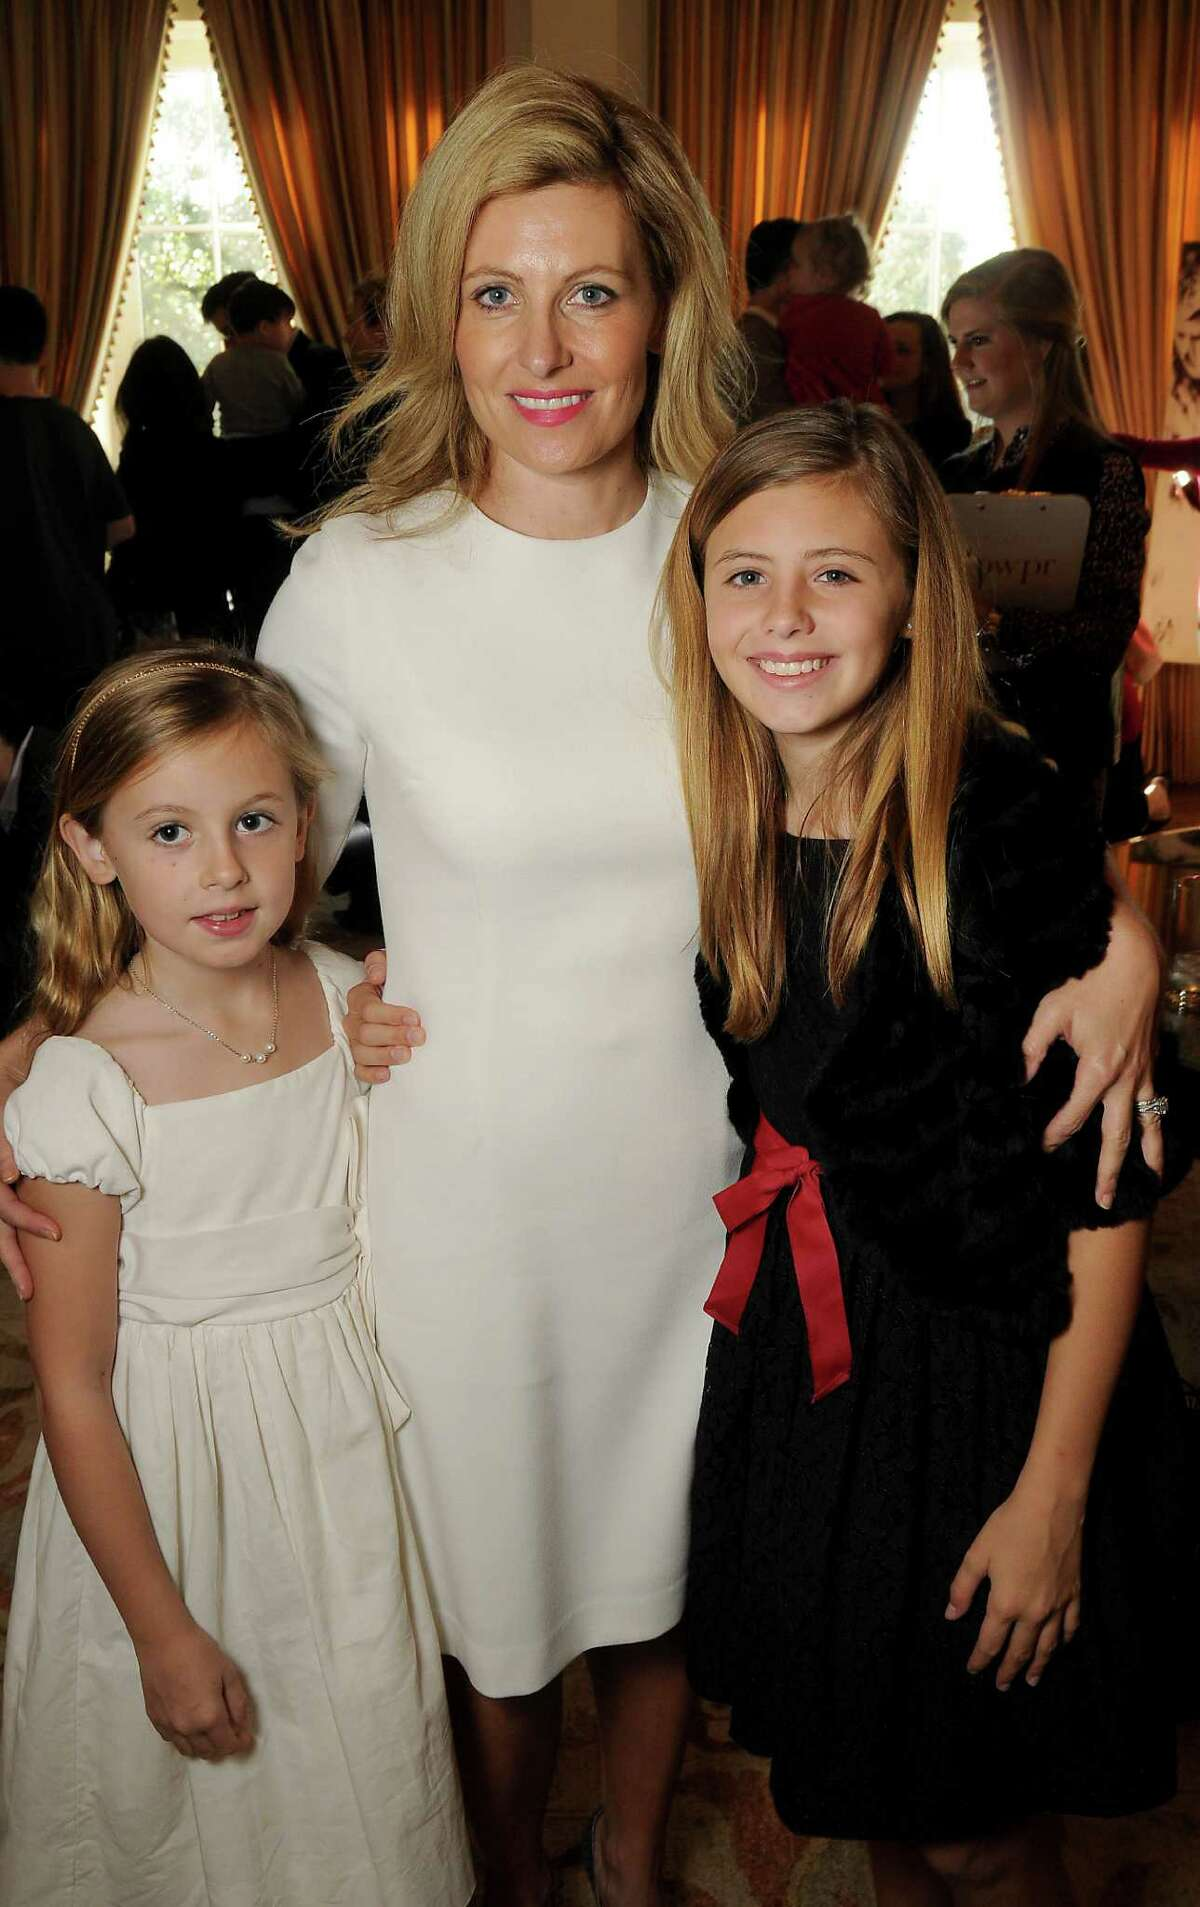 Carolyn Tanner with her daughters Brinnley and Lauren